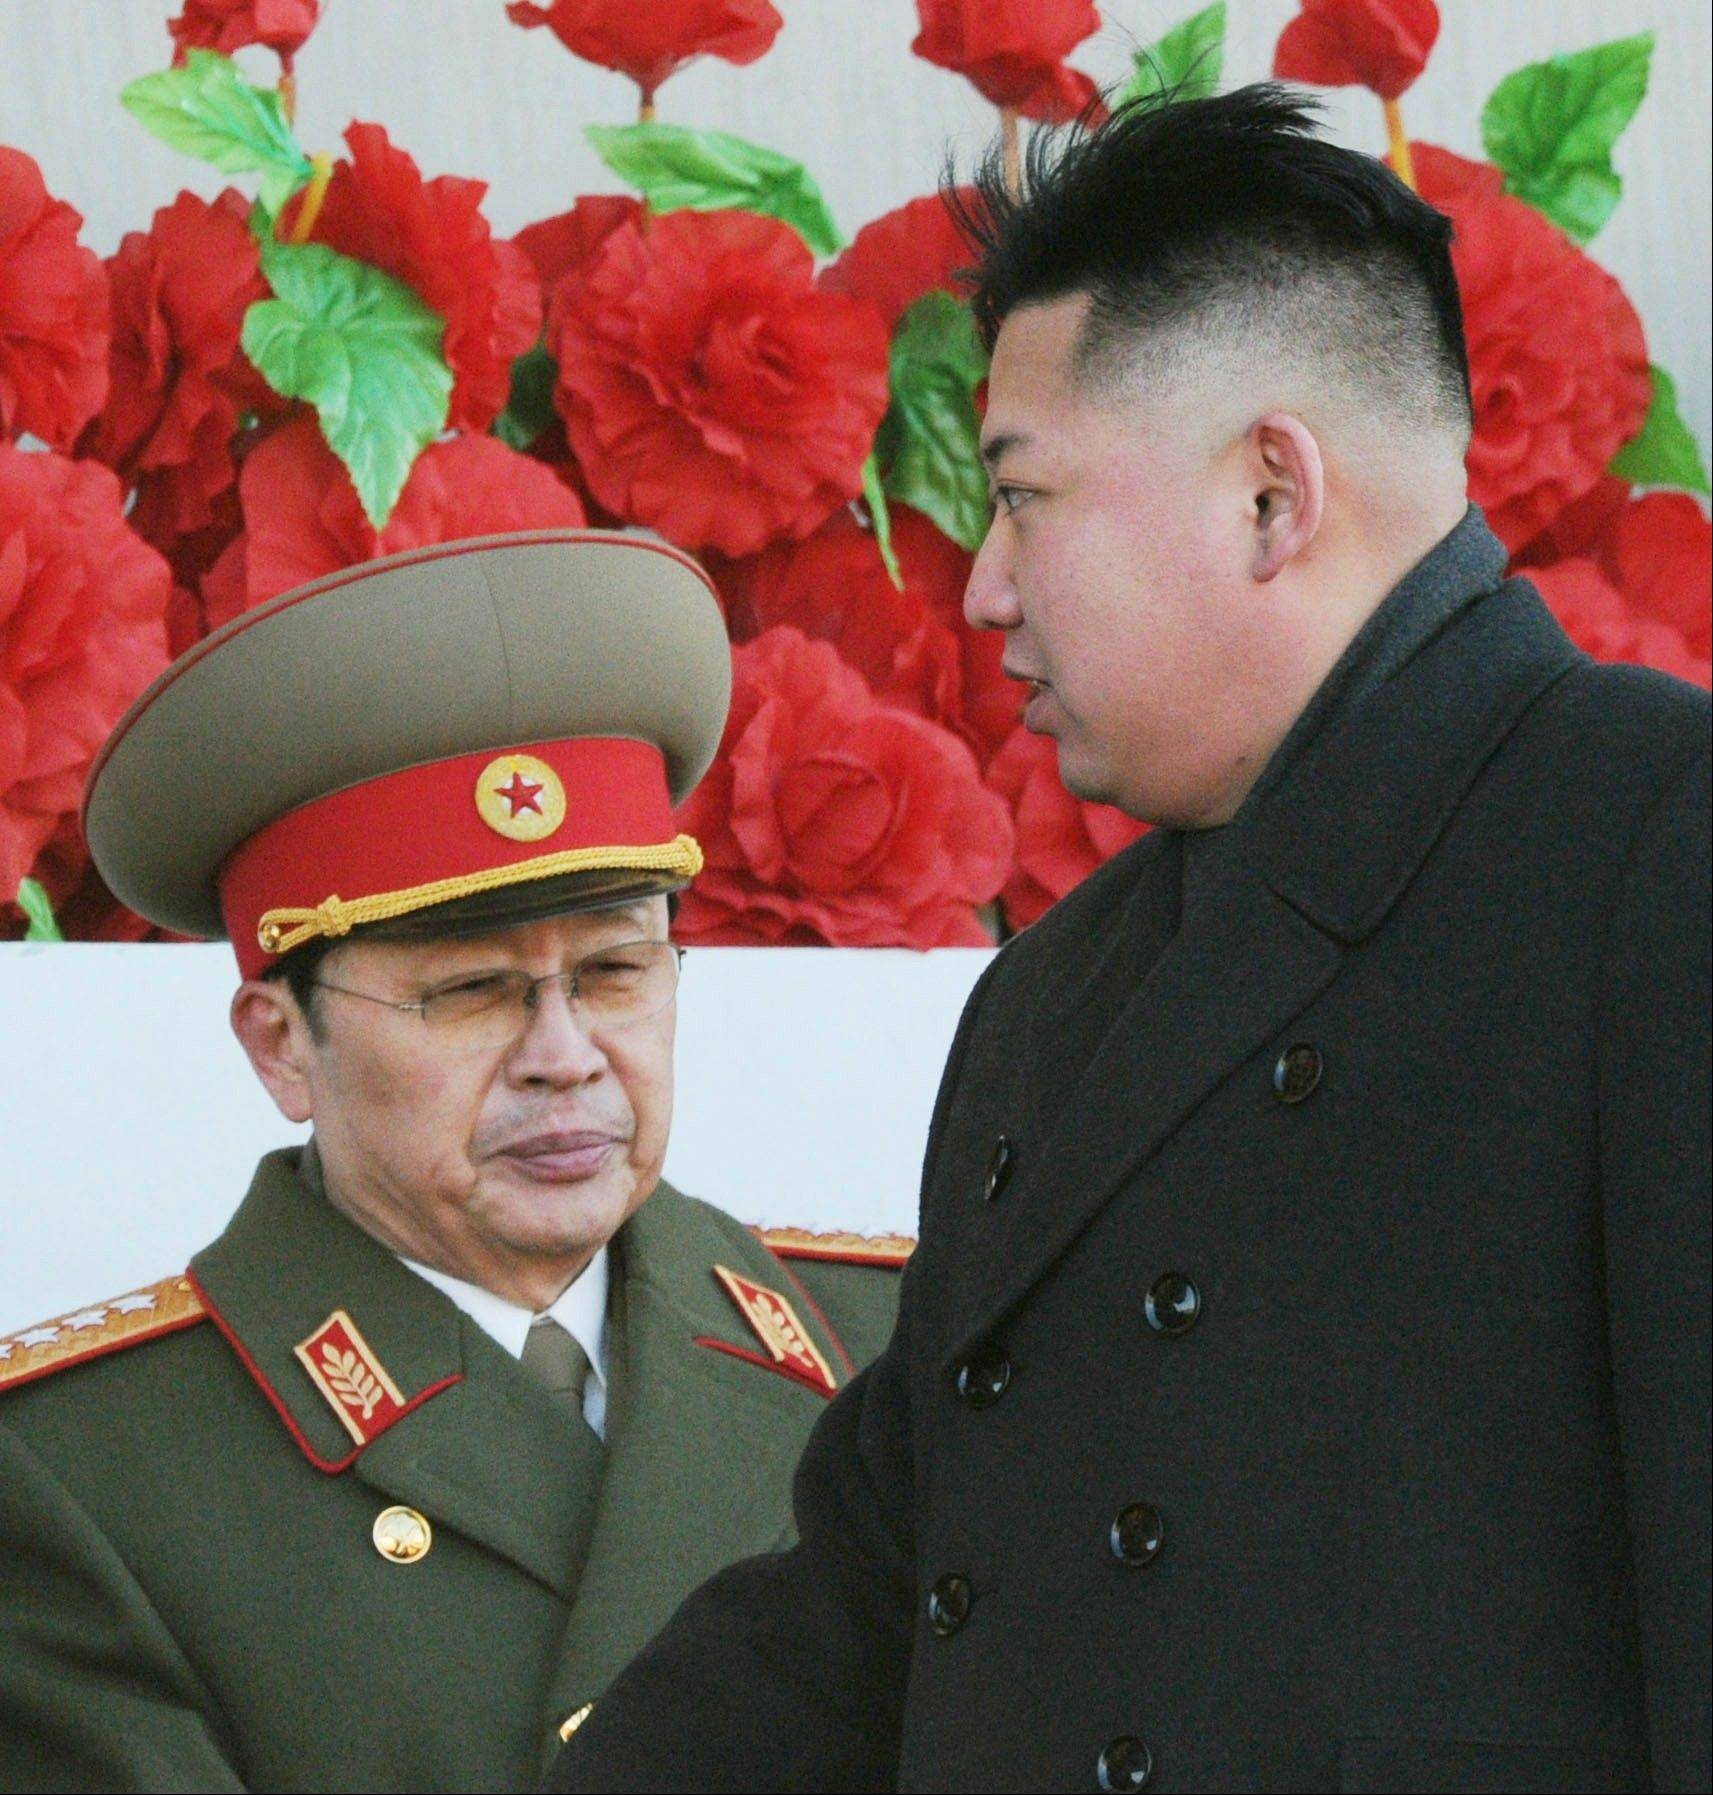 North Korean leader Kim Jong Un passes his uncle, Jang Song Thaek, left, after reviewing a parade of thousands of soldiers and commemorating the 70th birthday of the late Kim Jong Il in Pyongyang, North Korea, in this Feb. 16, 2012, file photo.